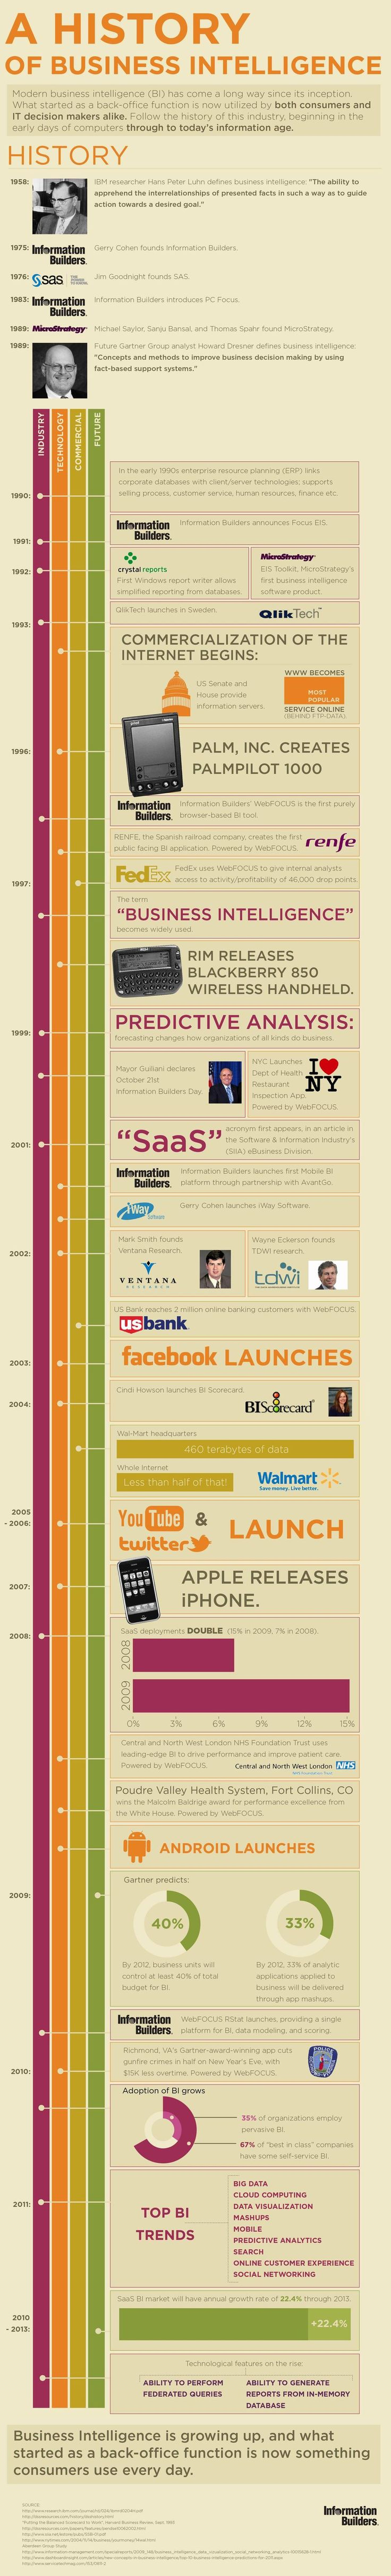 The Business Intelligence Timeline - #BI #Infographic